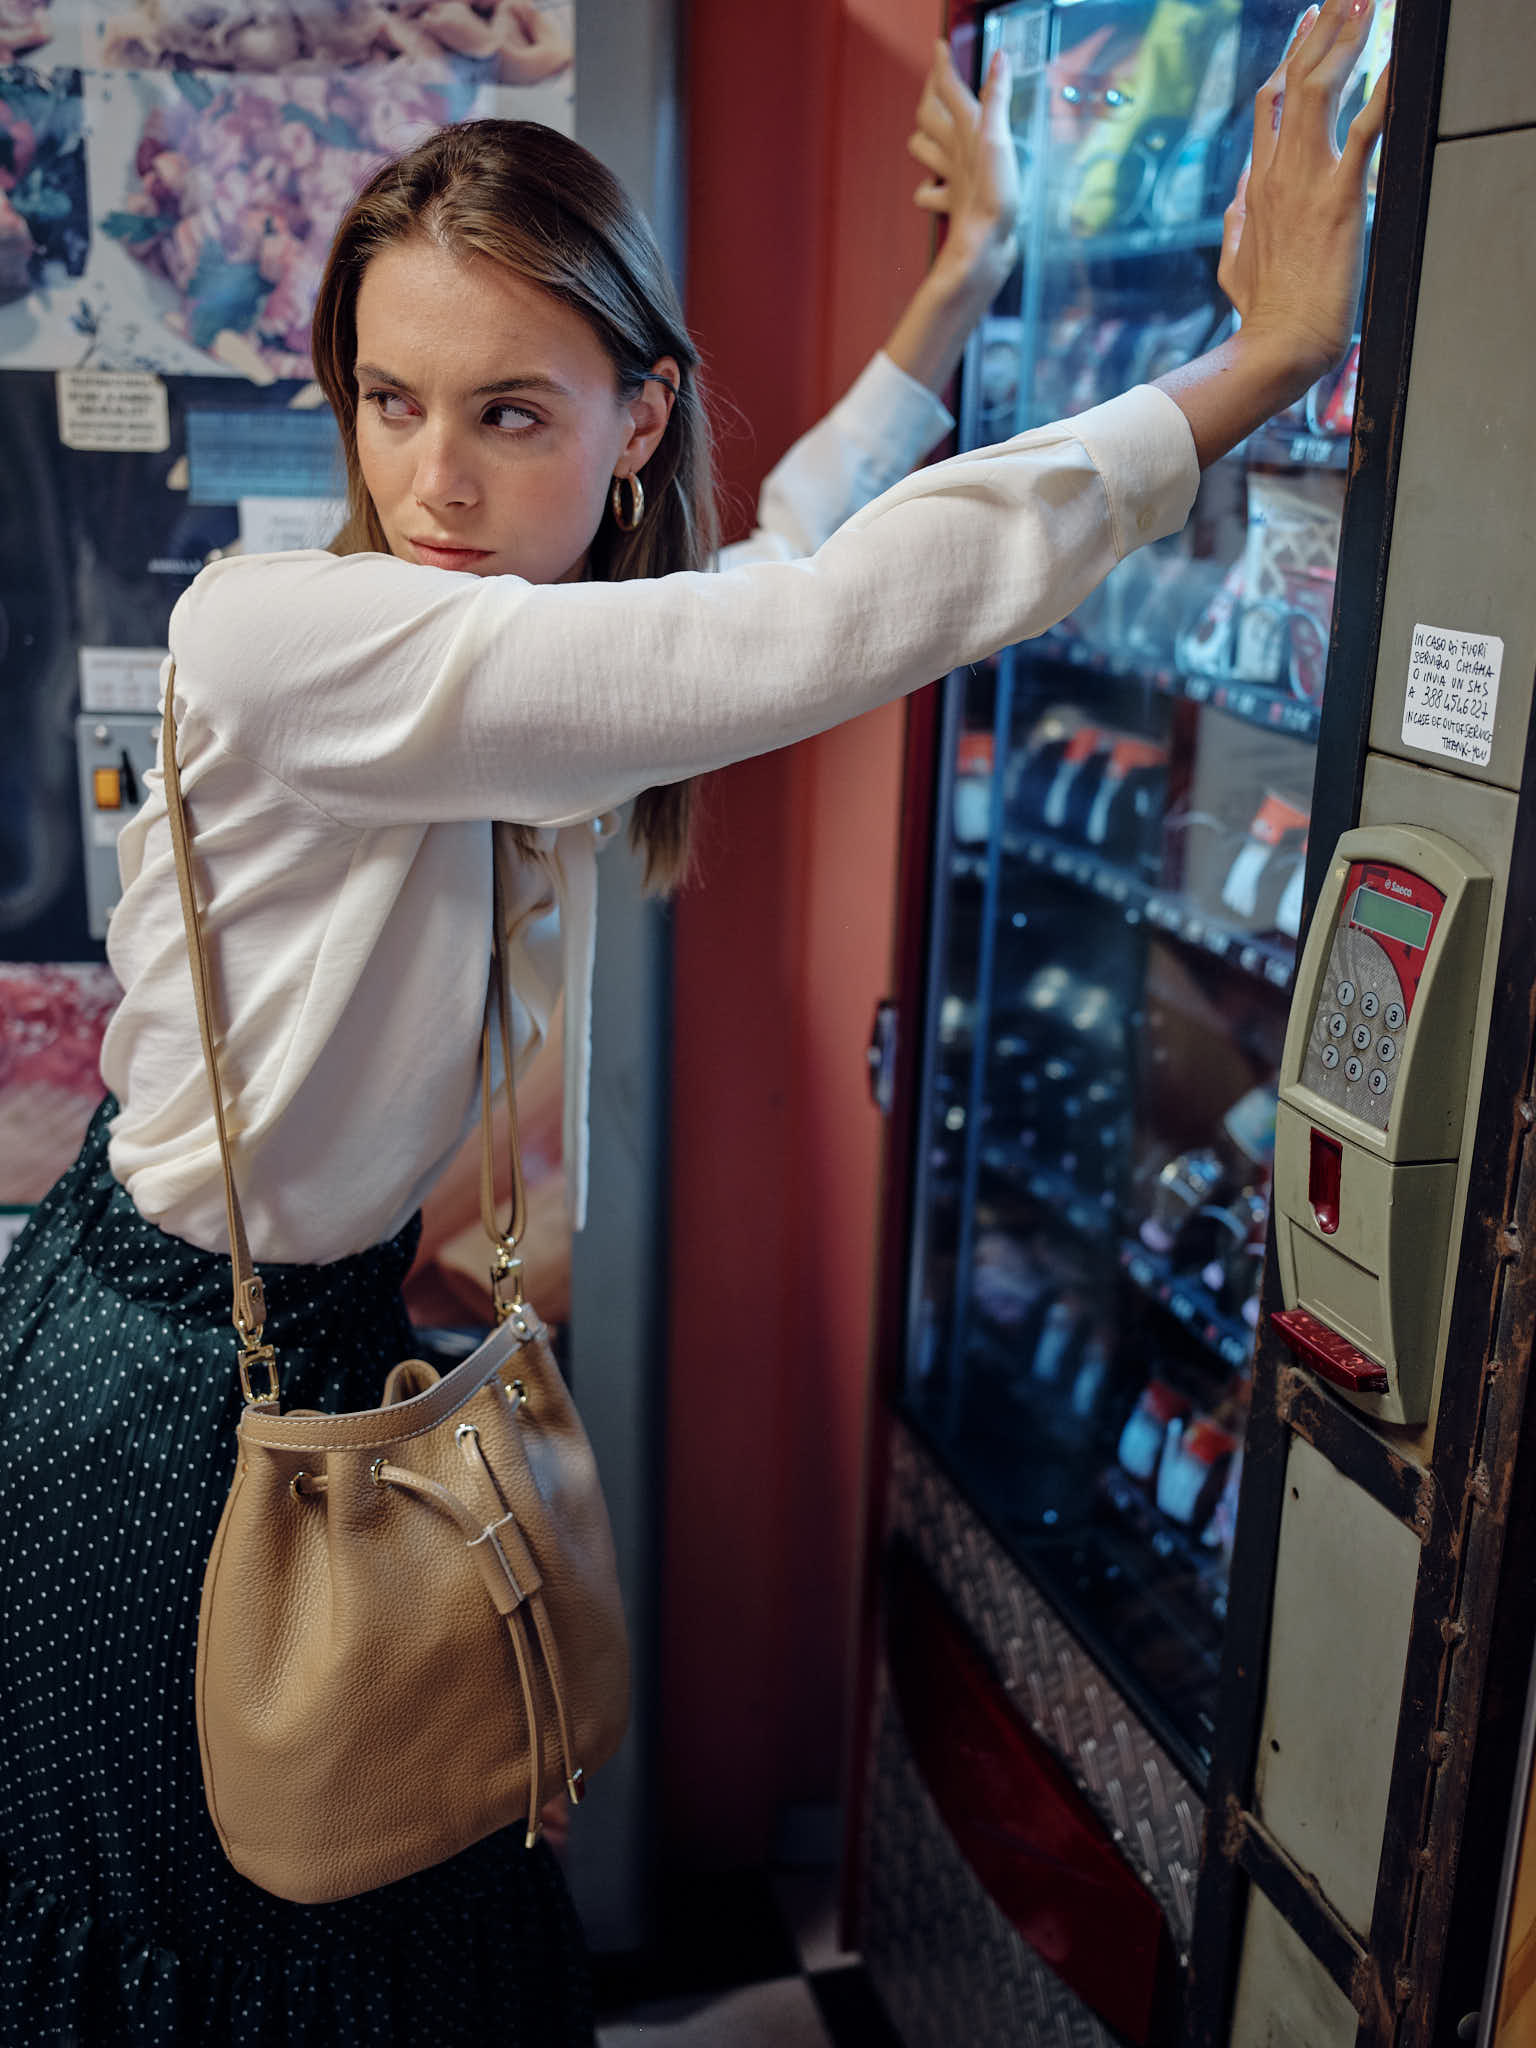 Street Fashion at the automatic food store in Florence, Italian Photographer